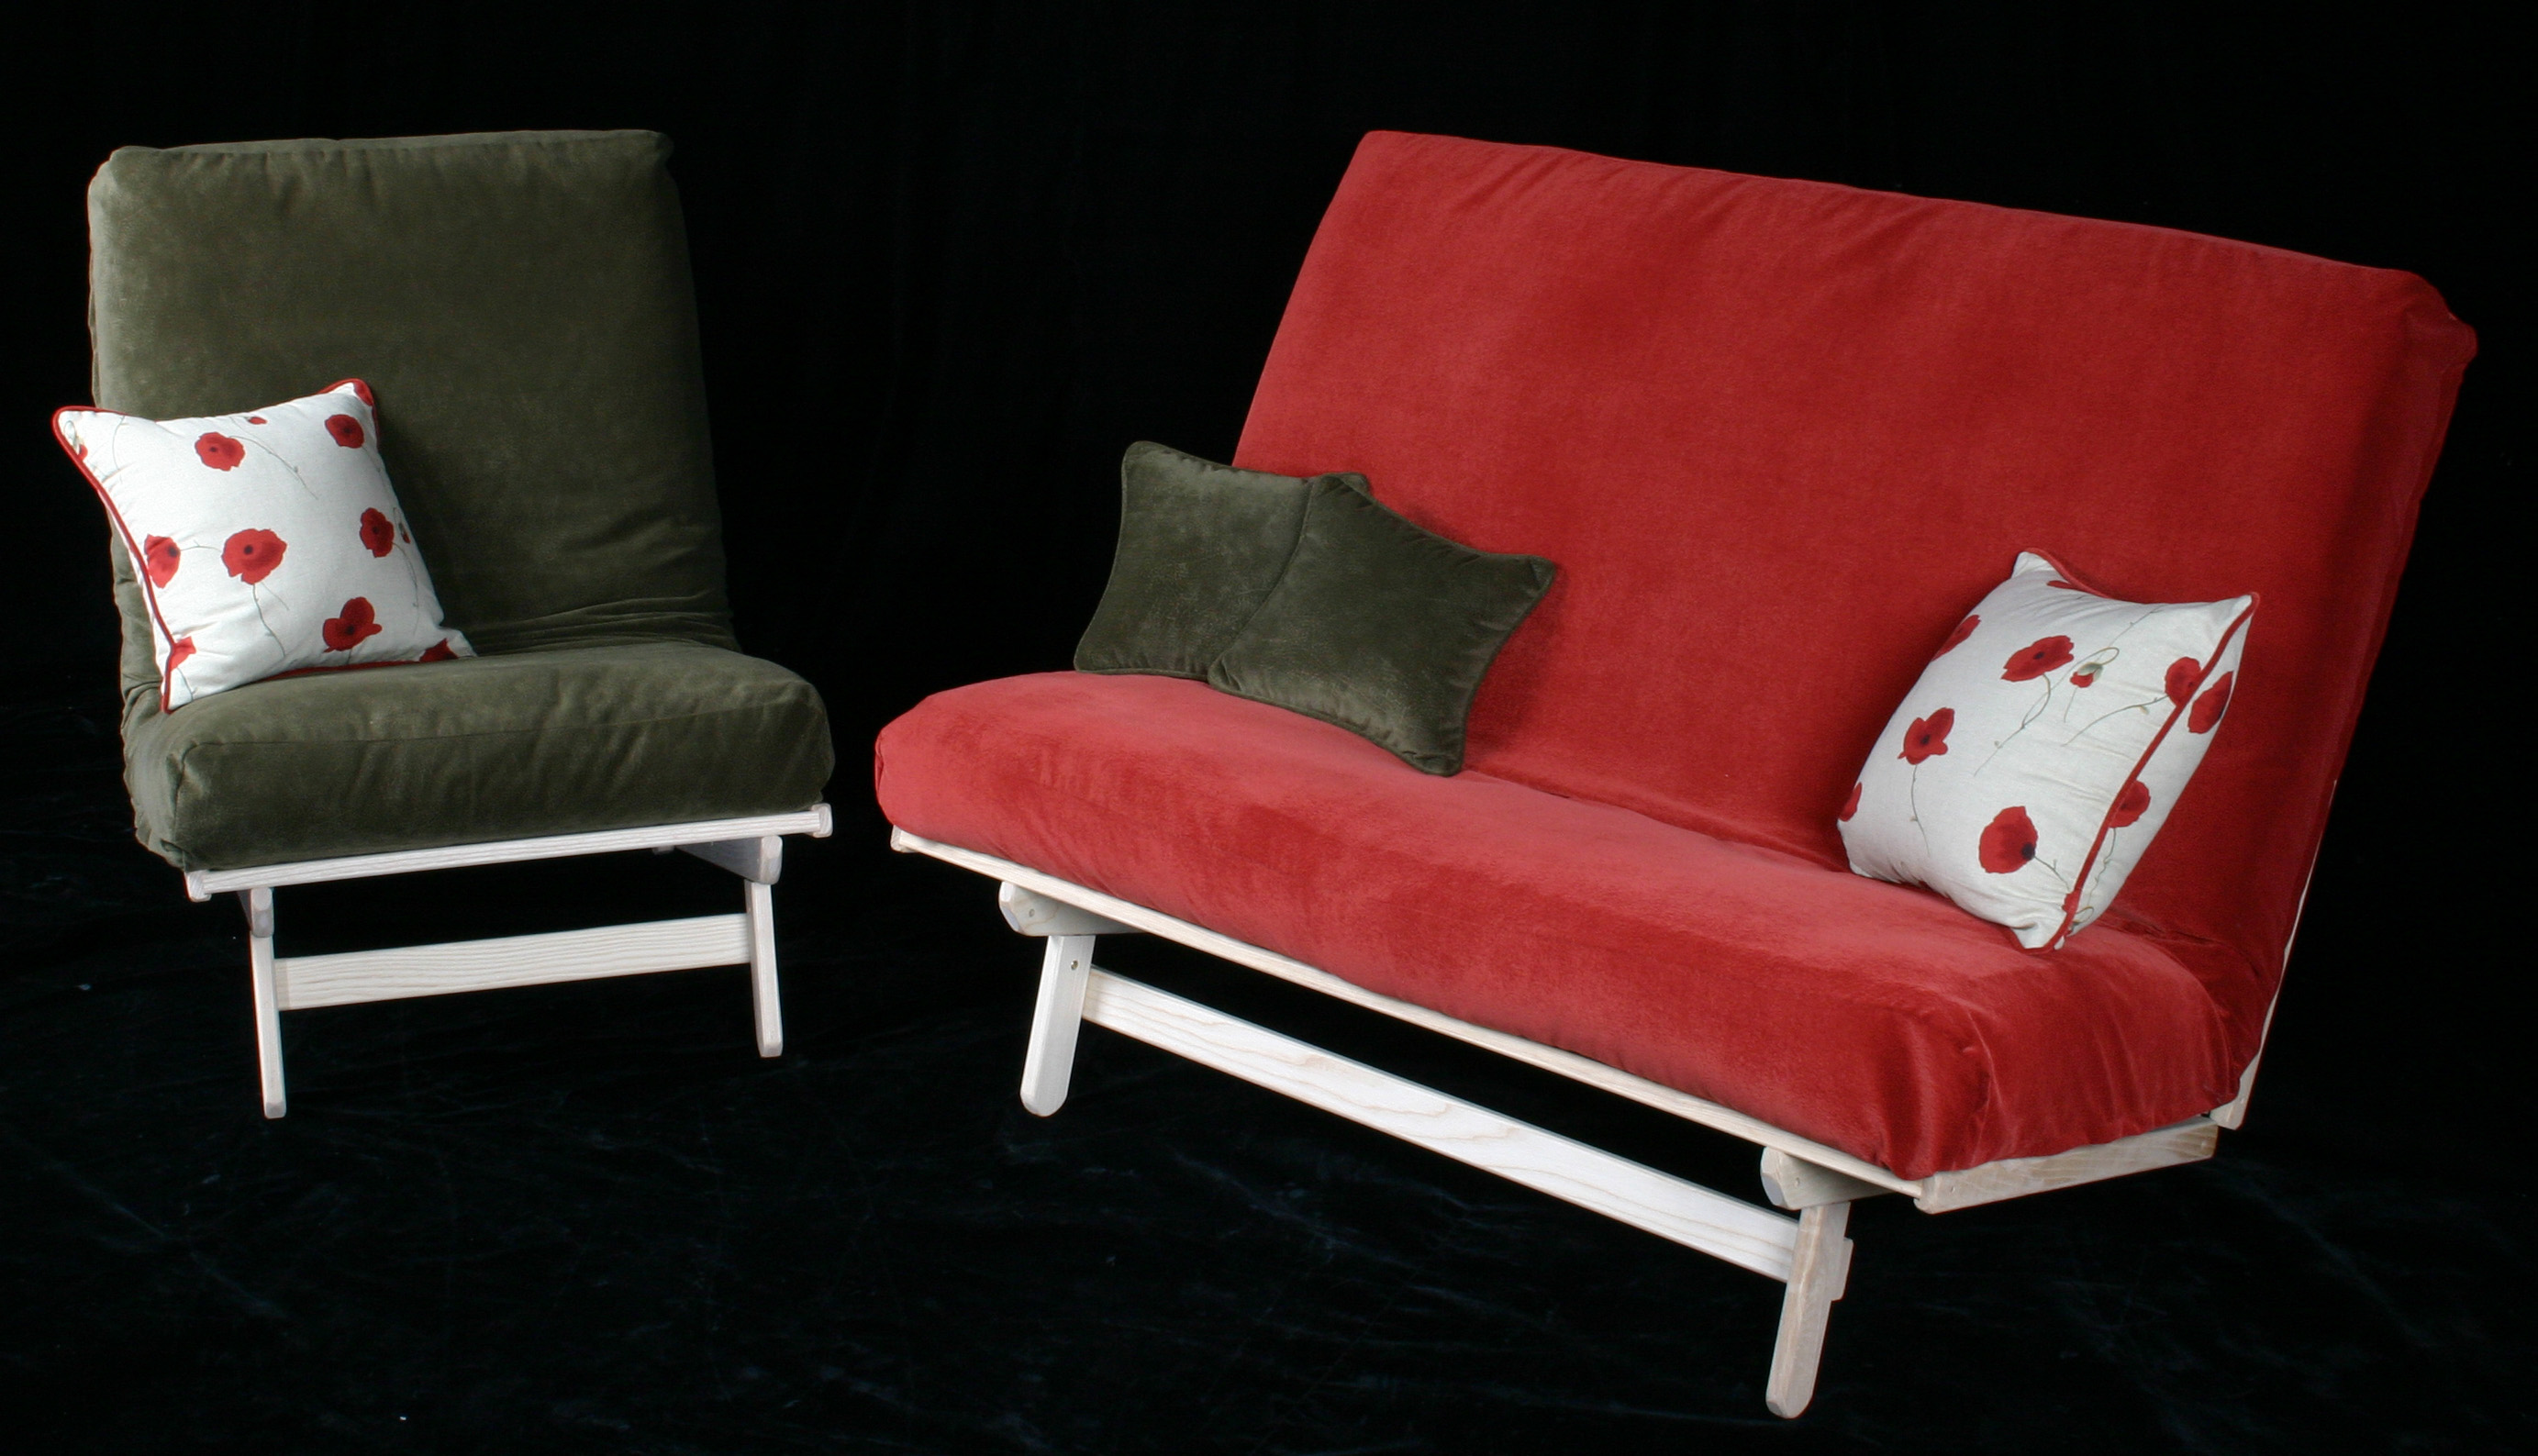 Freedom loveseat and chair